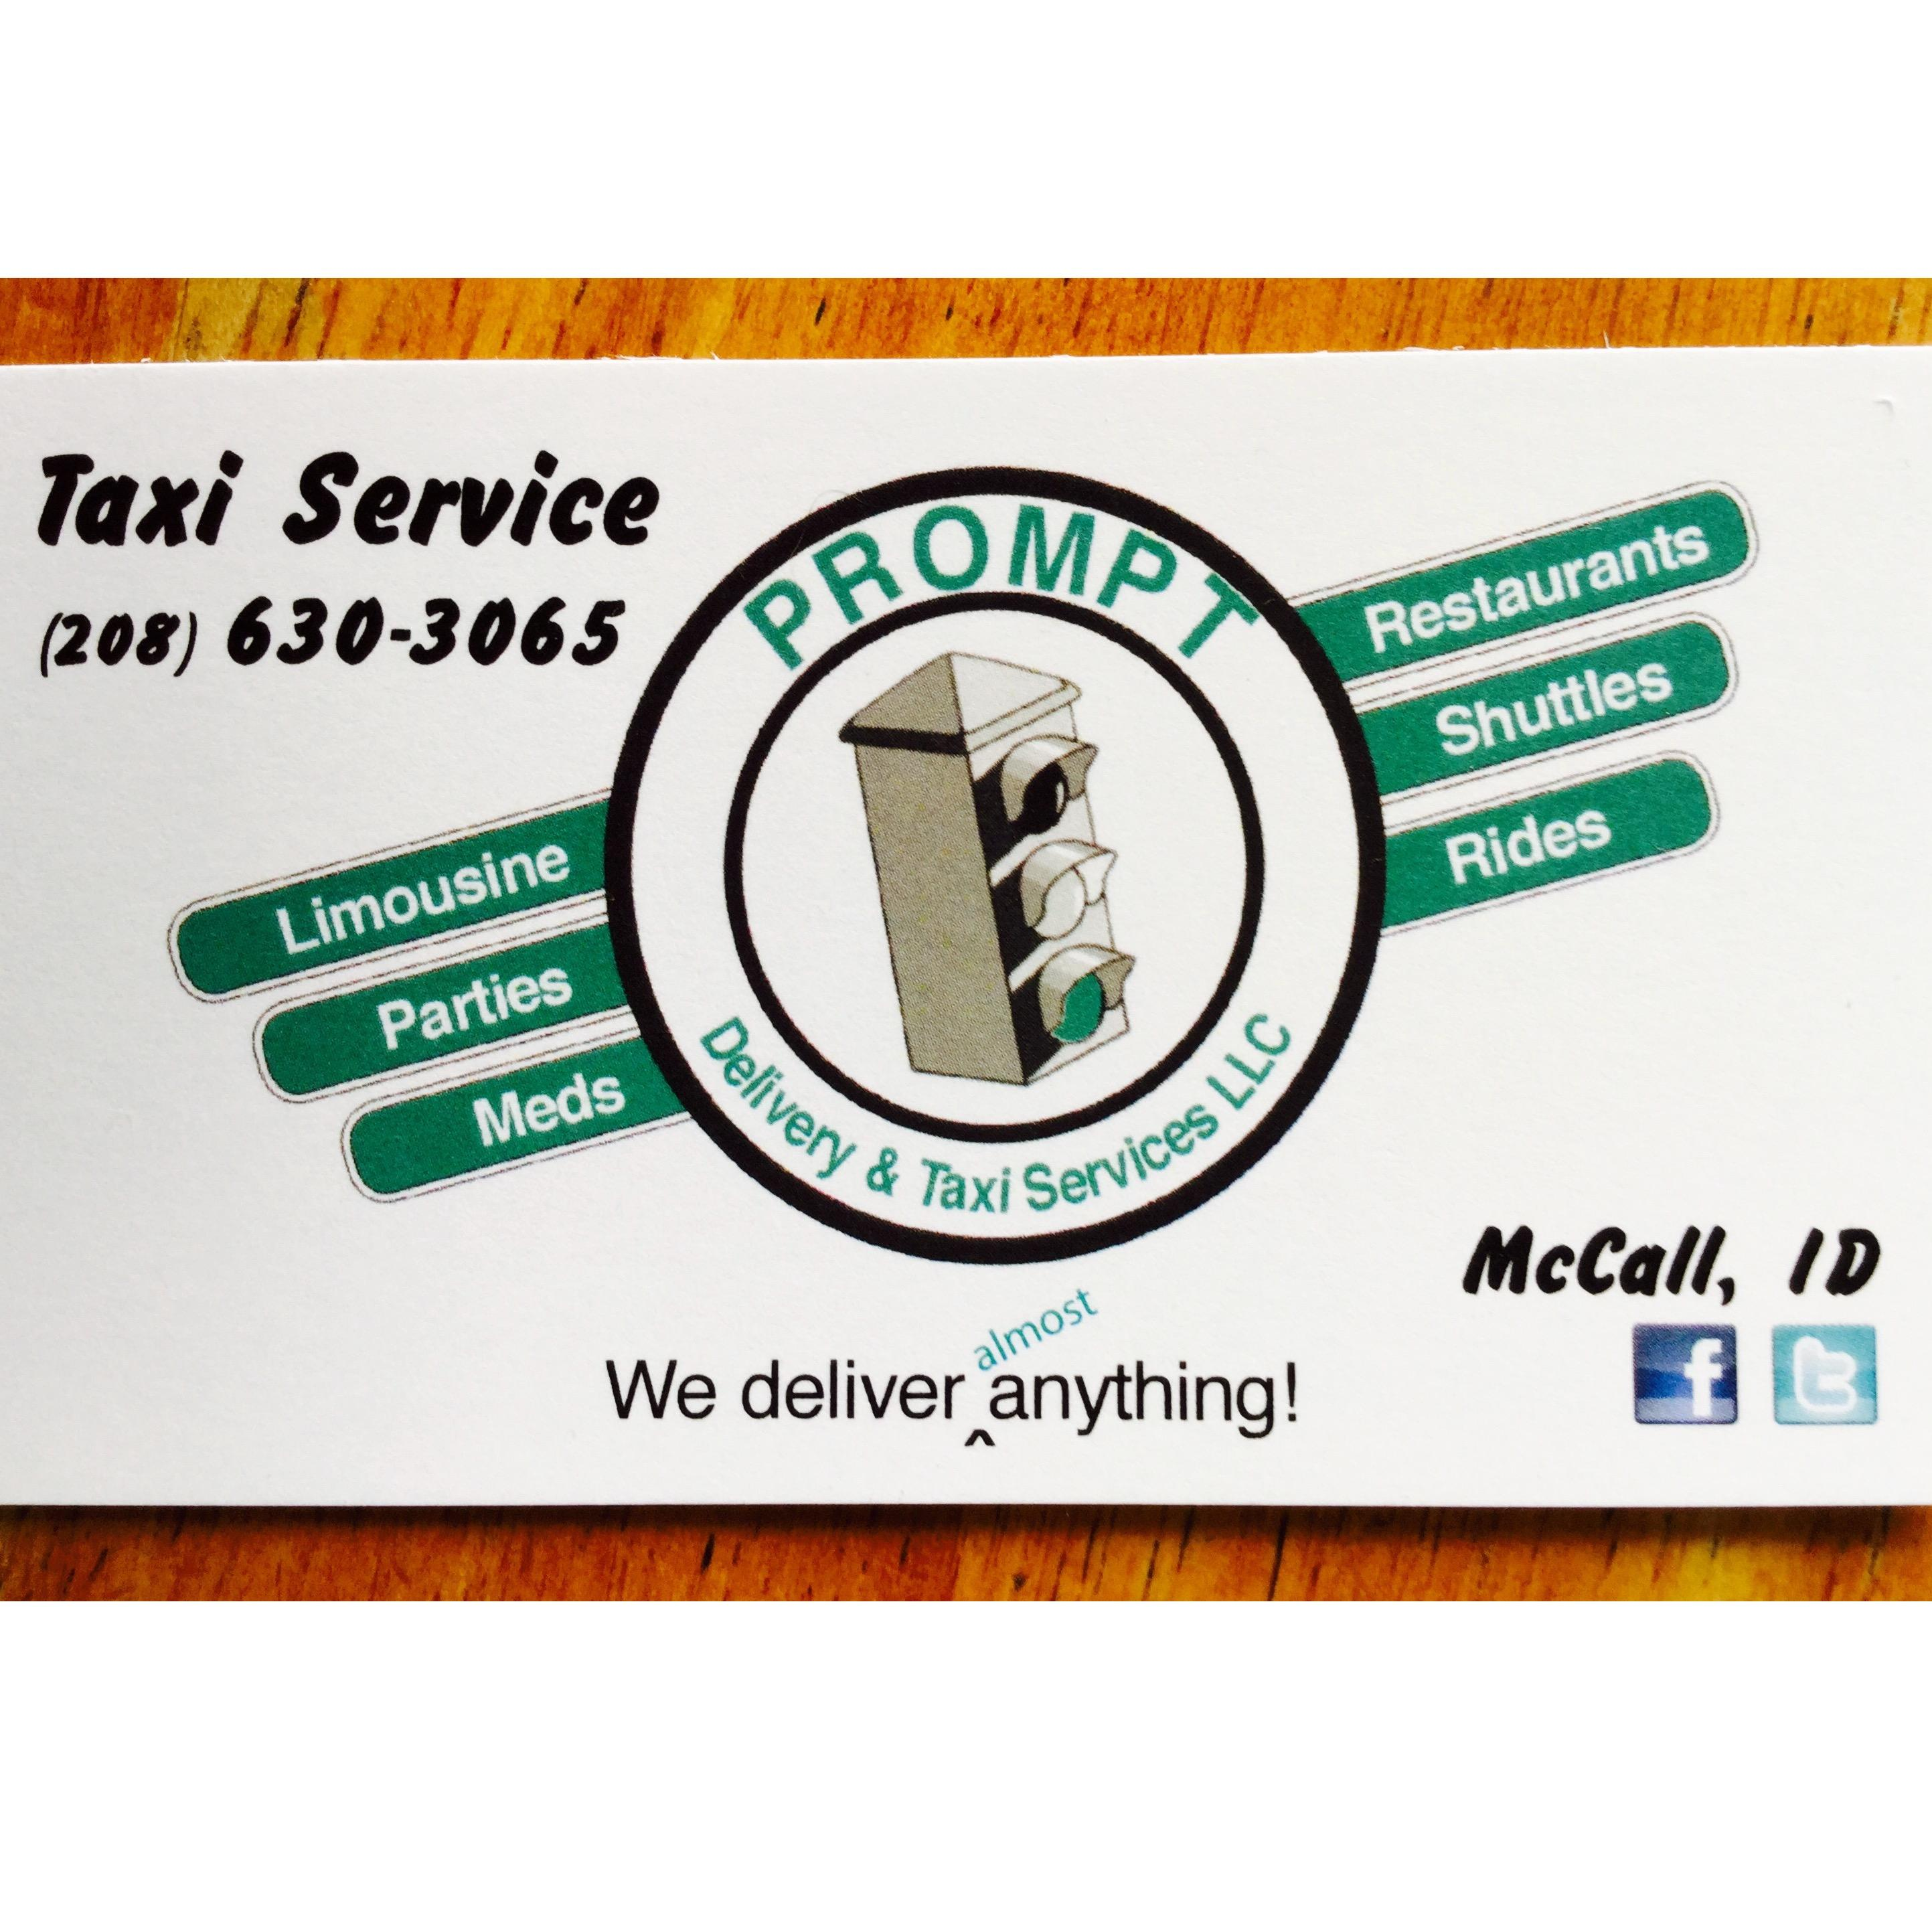 Prompt Delivery & Taxi Service LLC